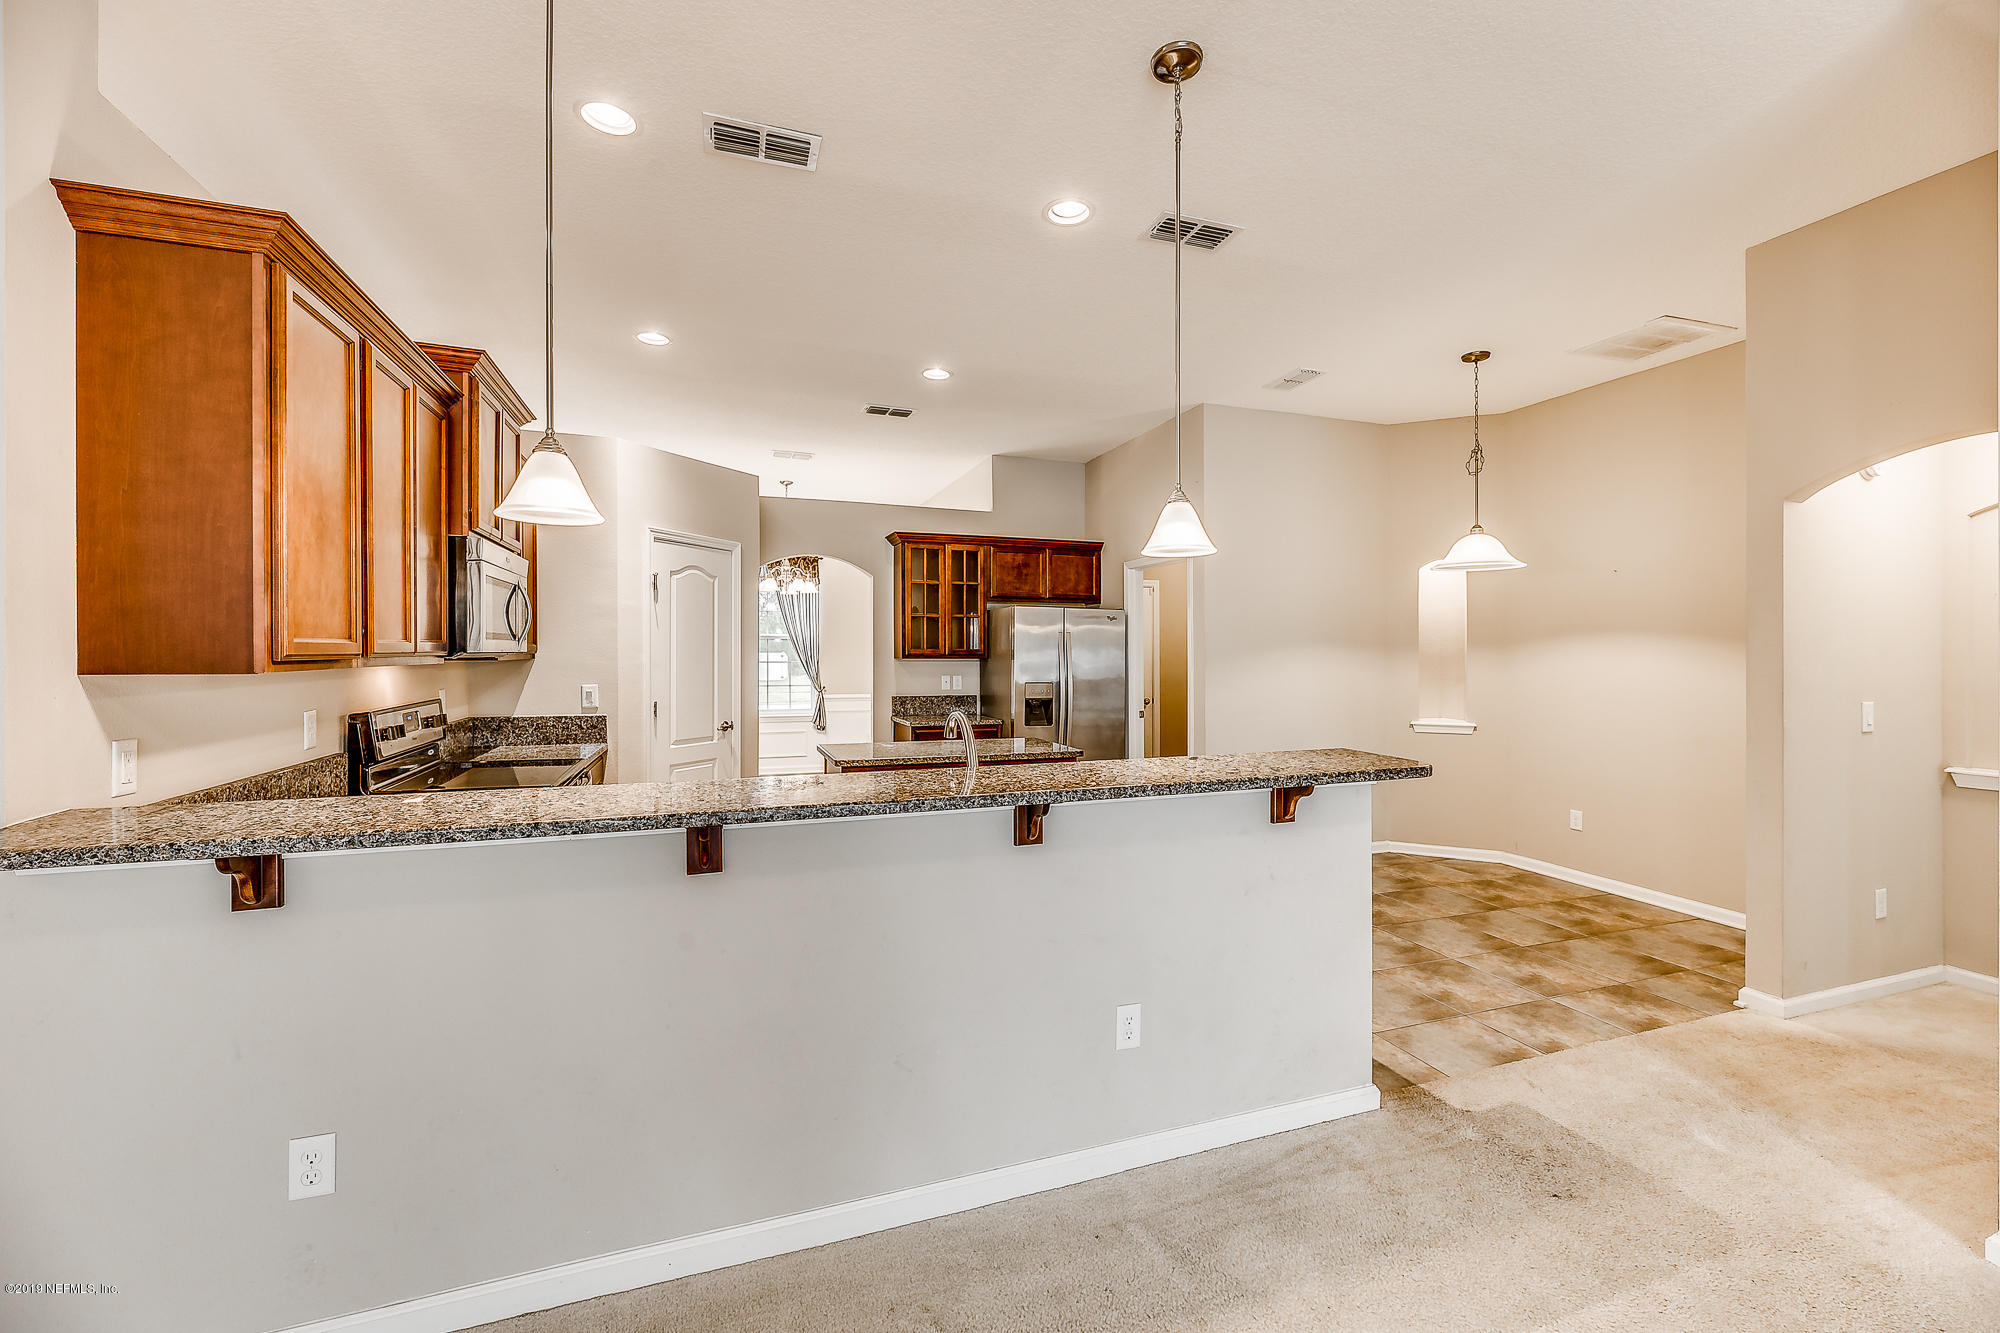 1416 KING RAIL, MIDDLEBURG, FLORIDA 32068, 5 Bedrooms Bedrooms, ,3 BathroomsBathrooms,Residential - single family,For sale,KING RAIL,984764